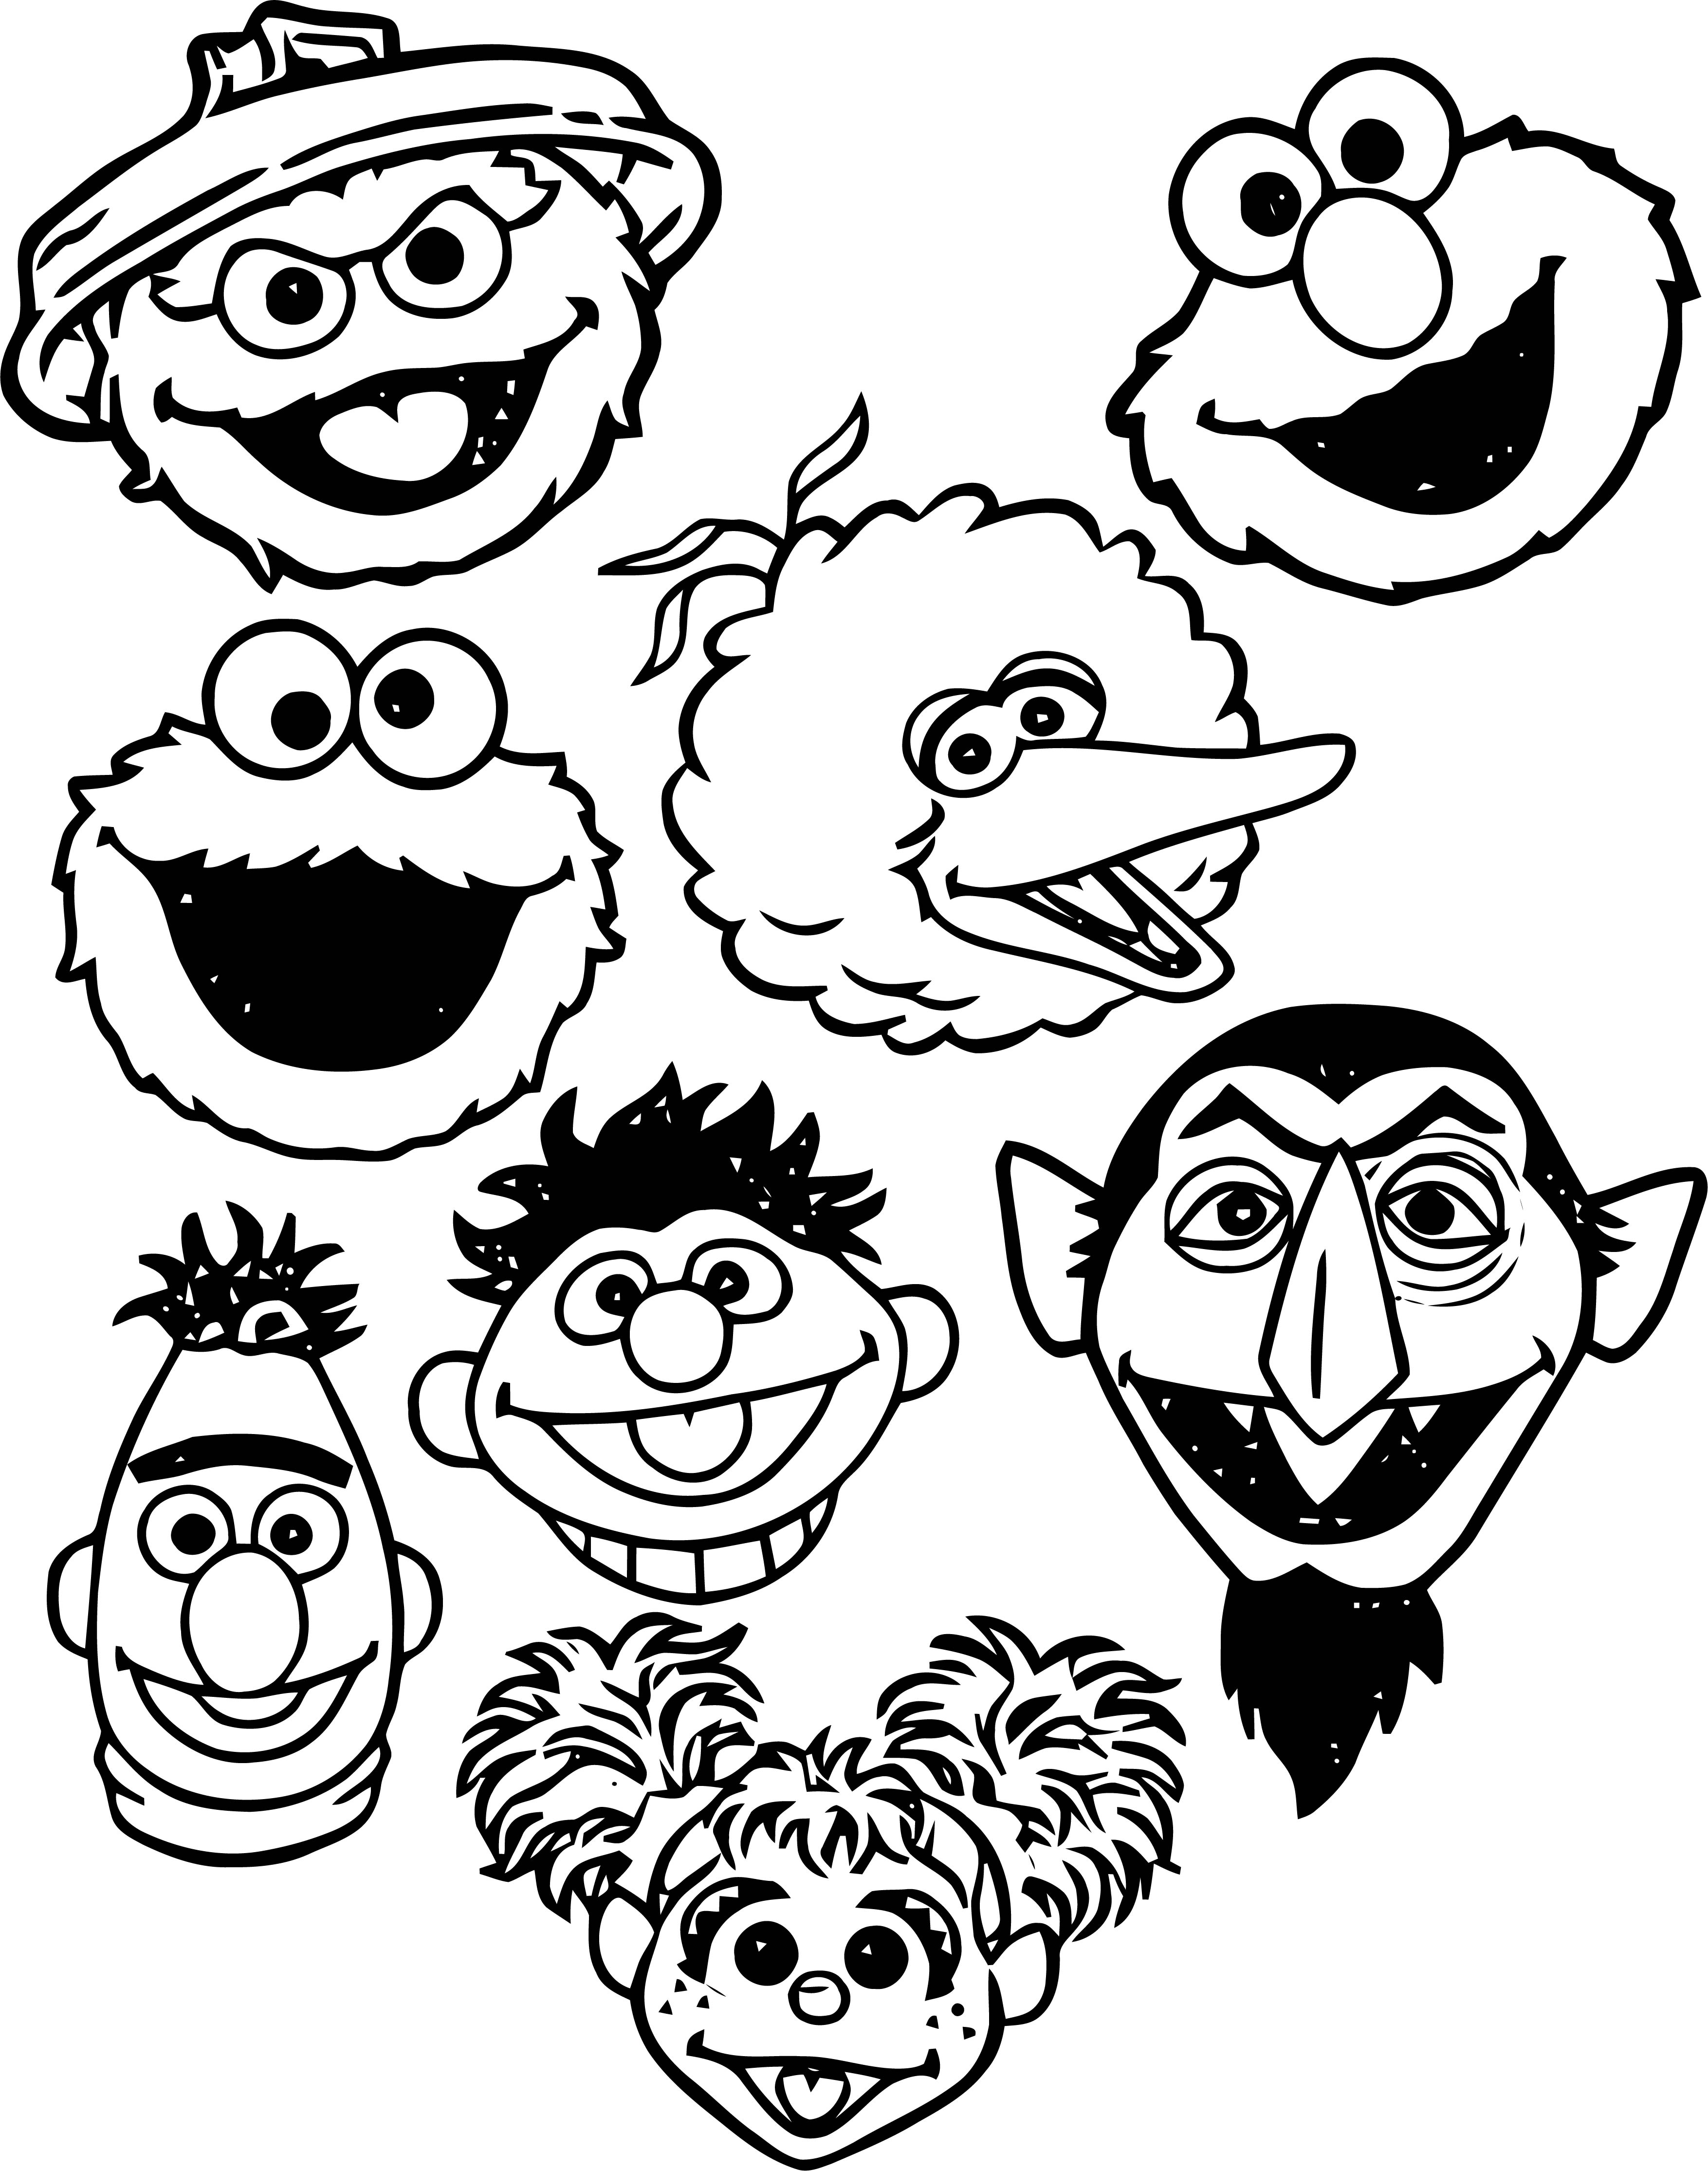 Sesame Street Character Face Coloring Page